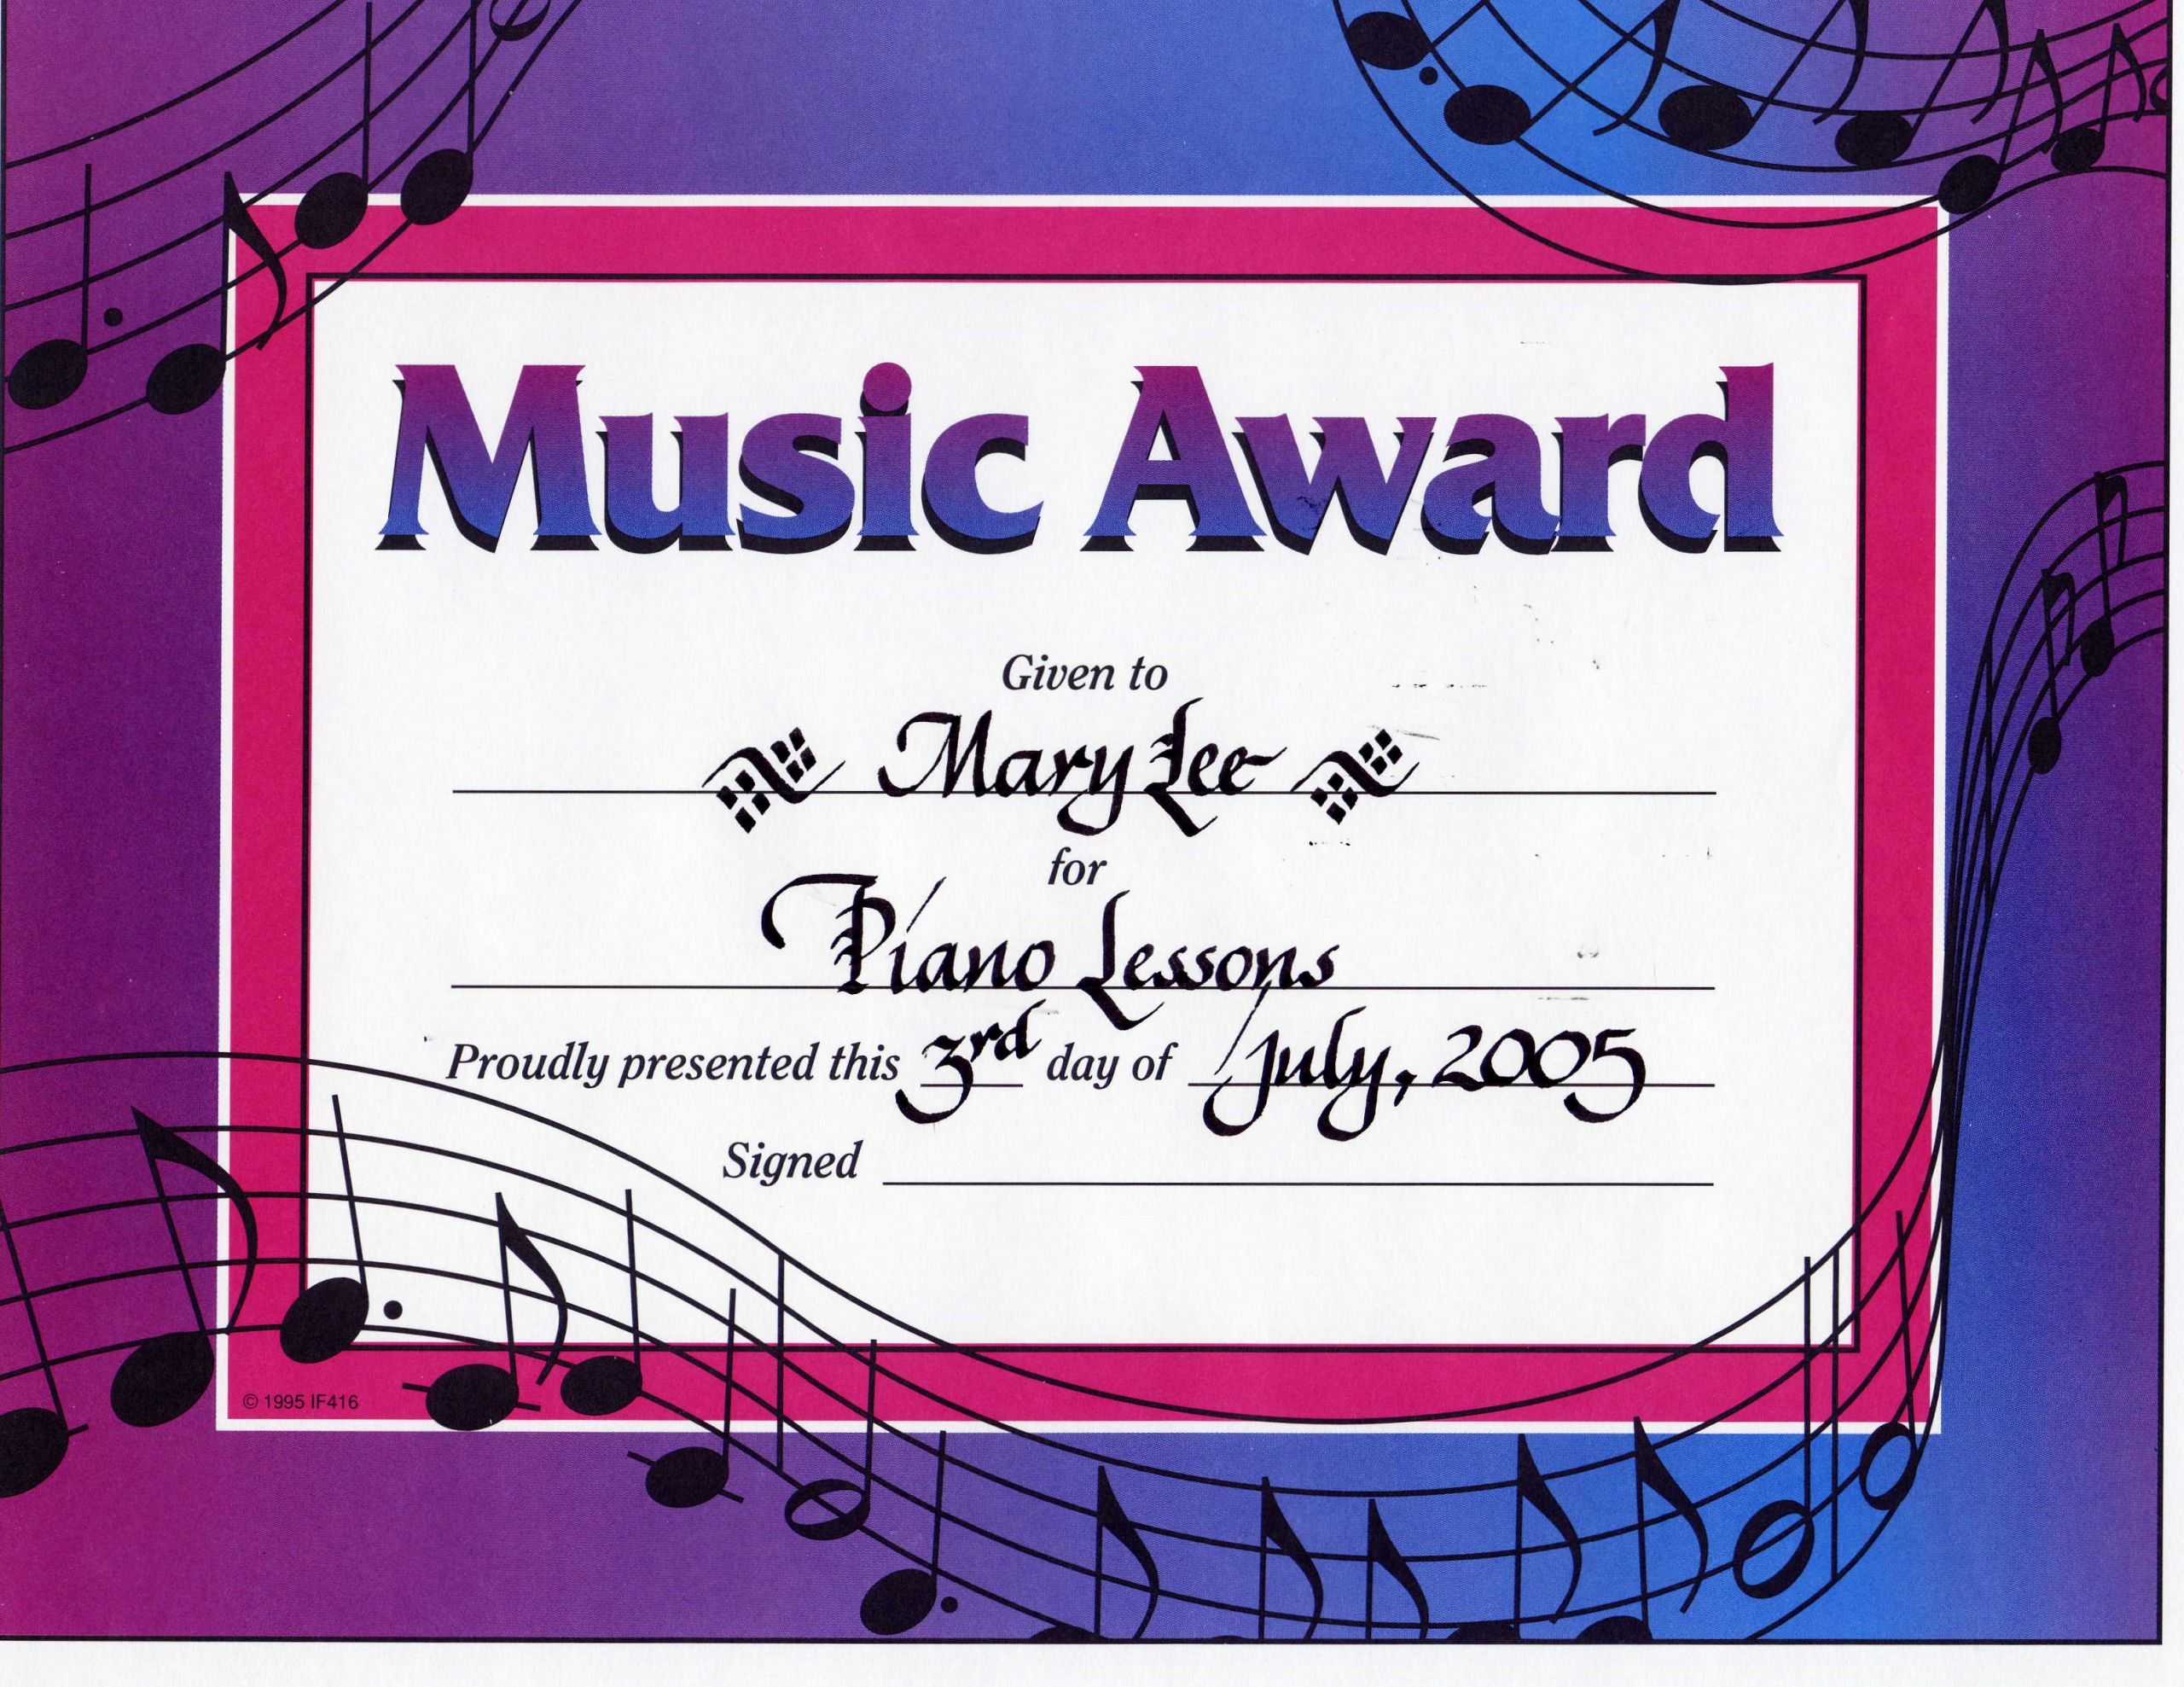 Music Award Certificate Template Fresh Certificate Template Category Page 36 Efoza